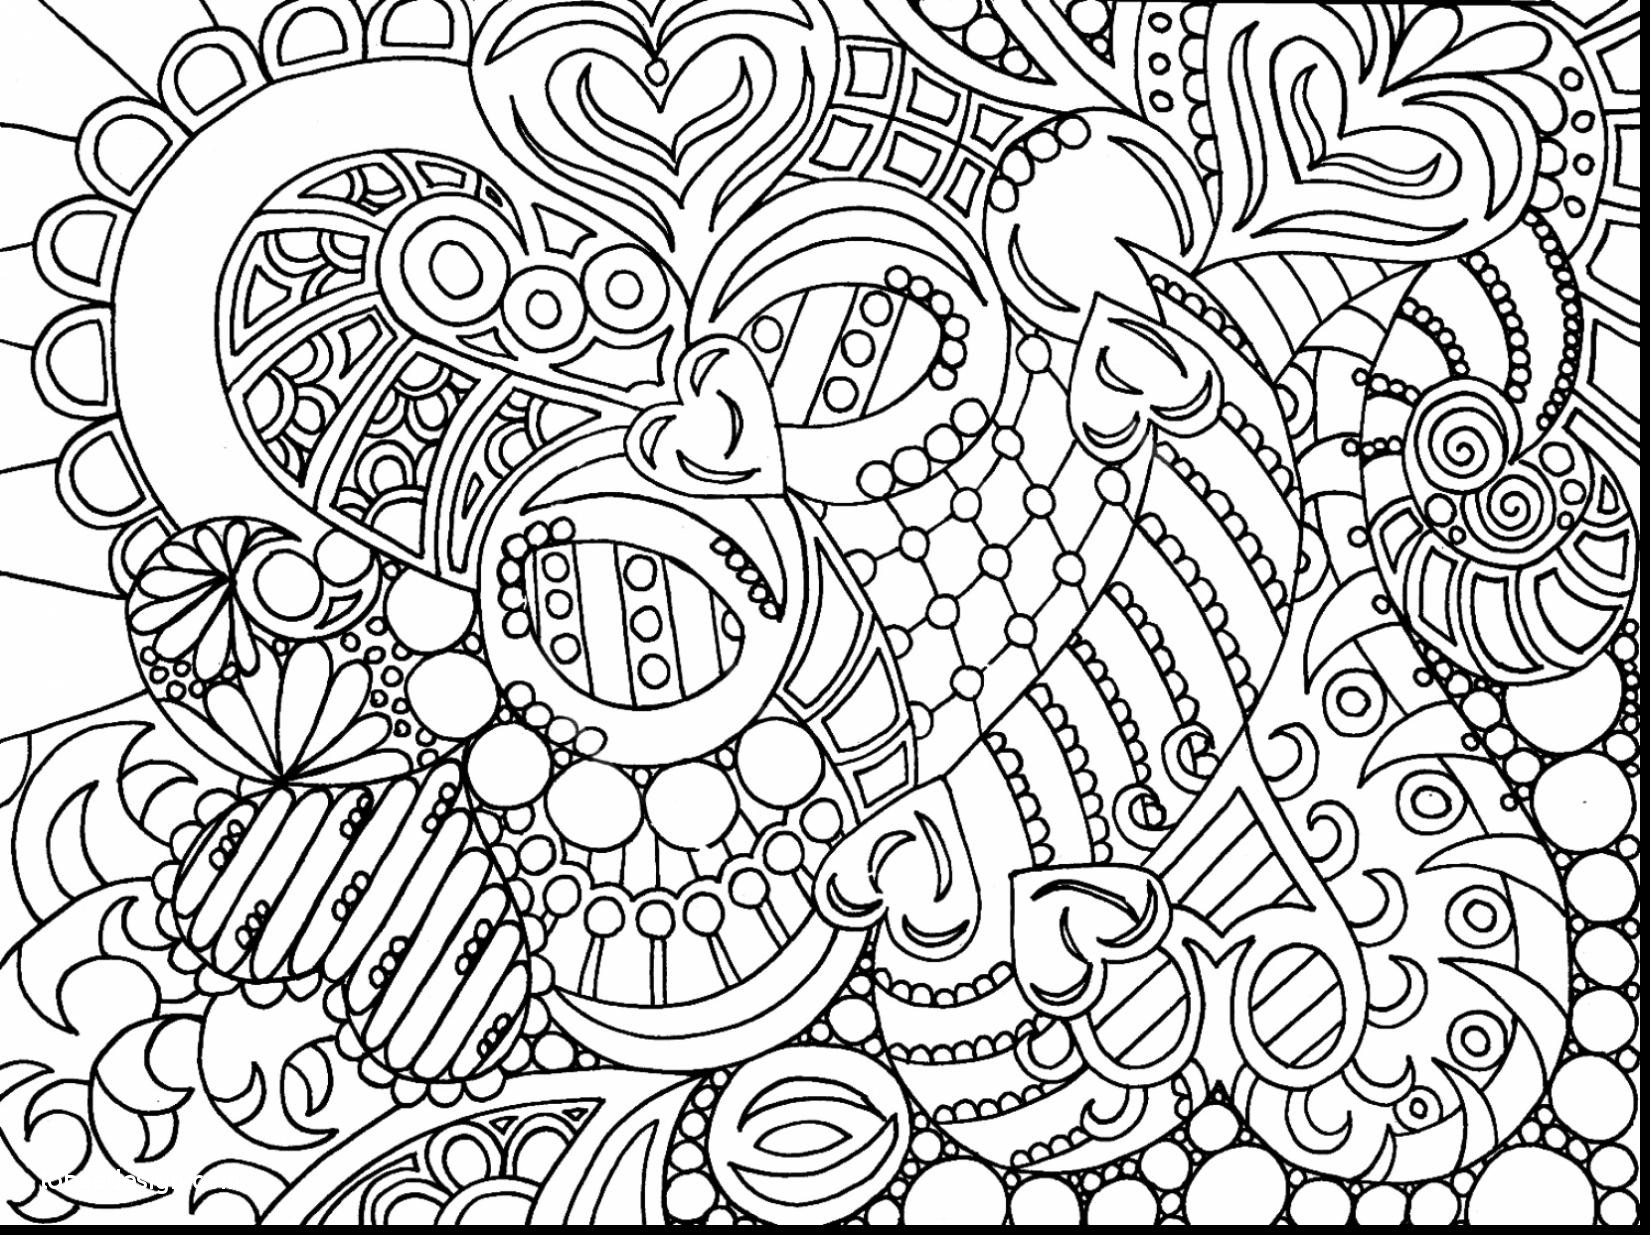 difficult coloring pages for teenagers coloring pages for teens coloringrocks pages coloring teenagers difficult for